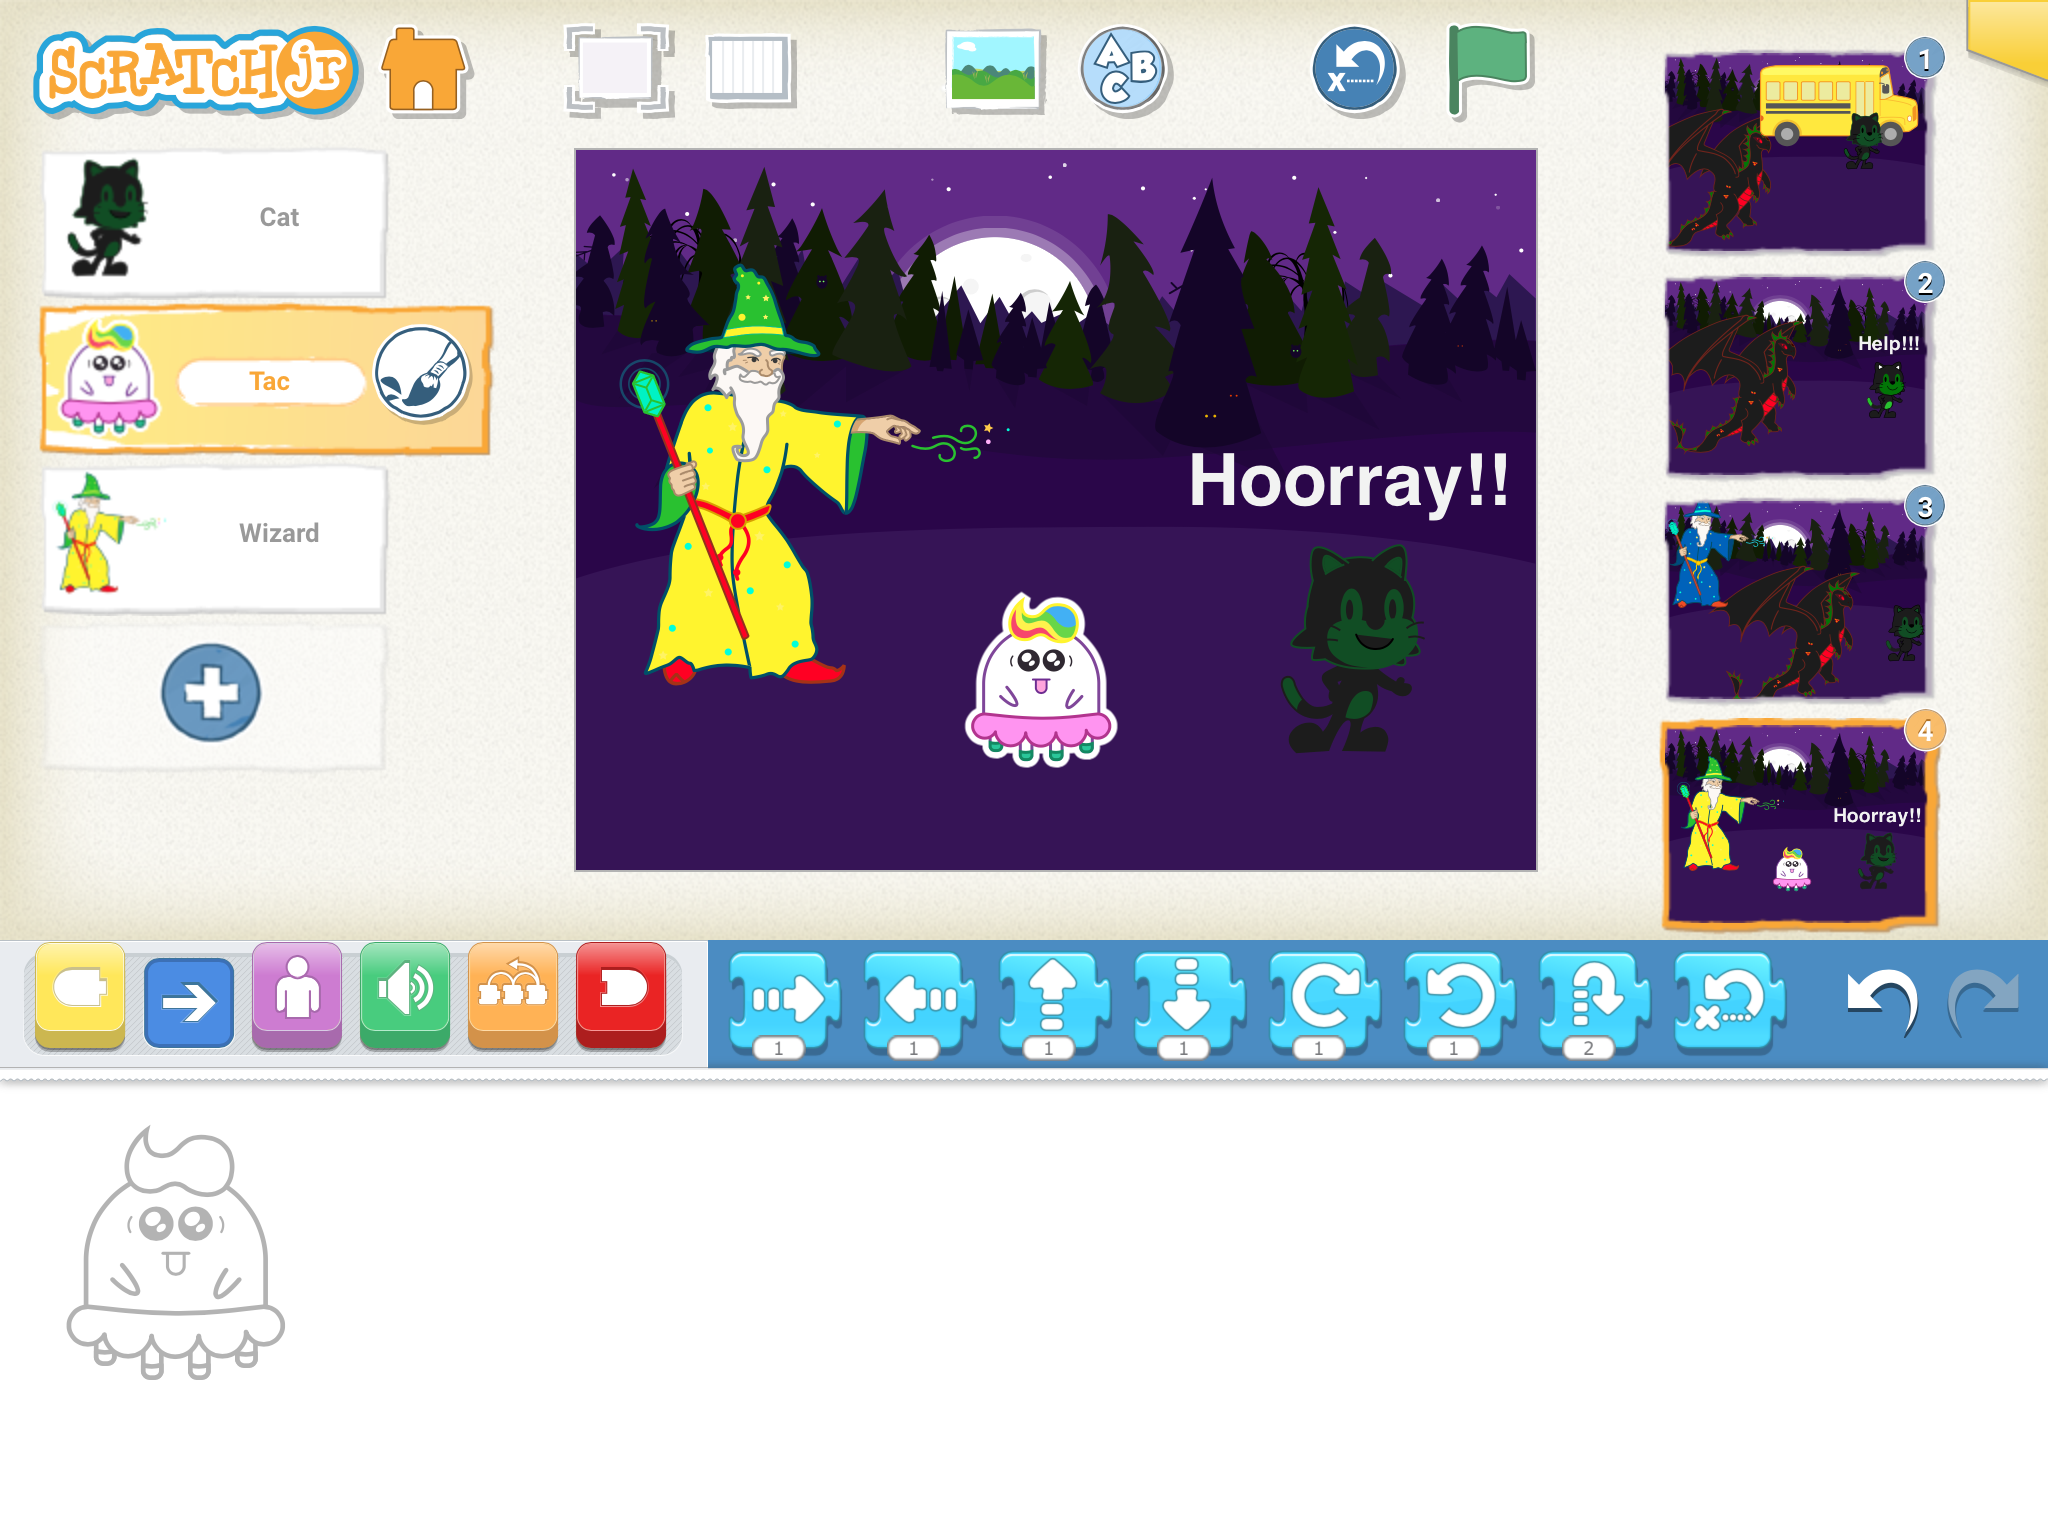 Coding Apps For Kids Scratch JR blocks 1 - Best Coding Apps for Kids under 8 to Learn Programming